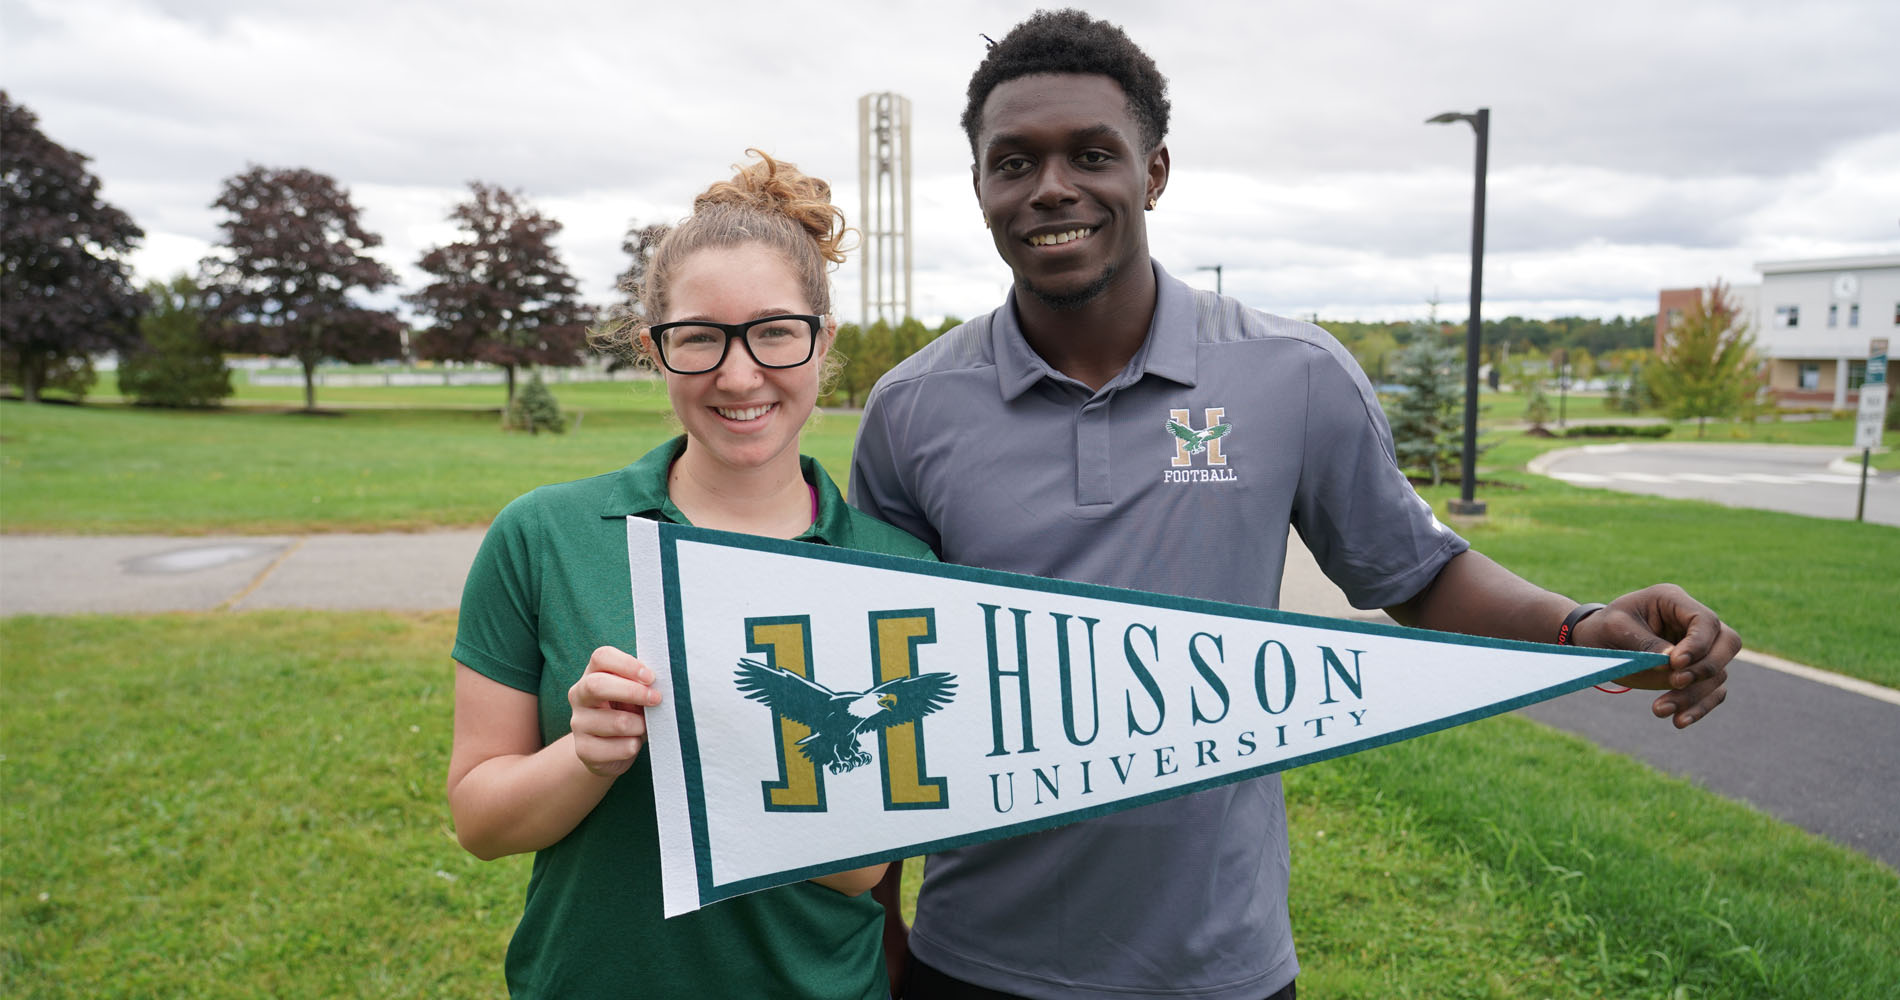 Students hold a pennant on the campus of Husson University